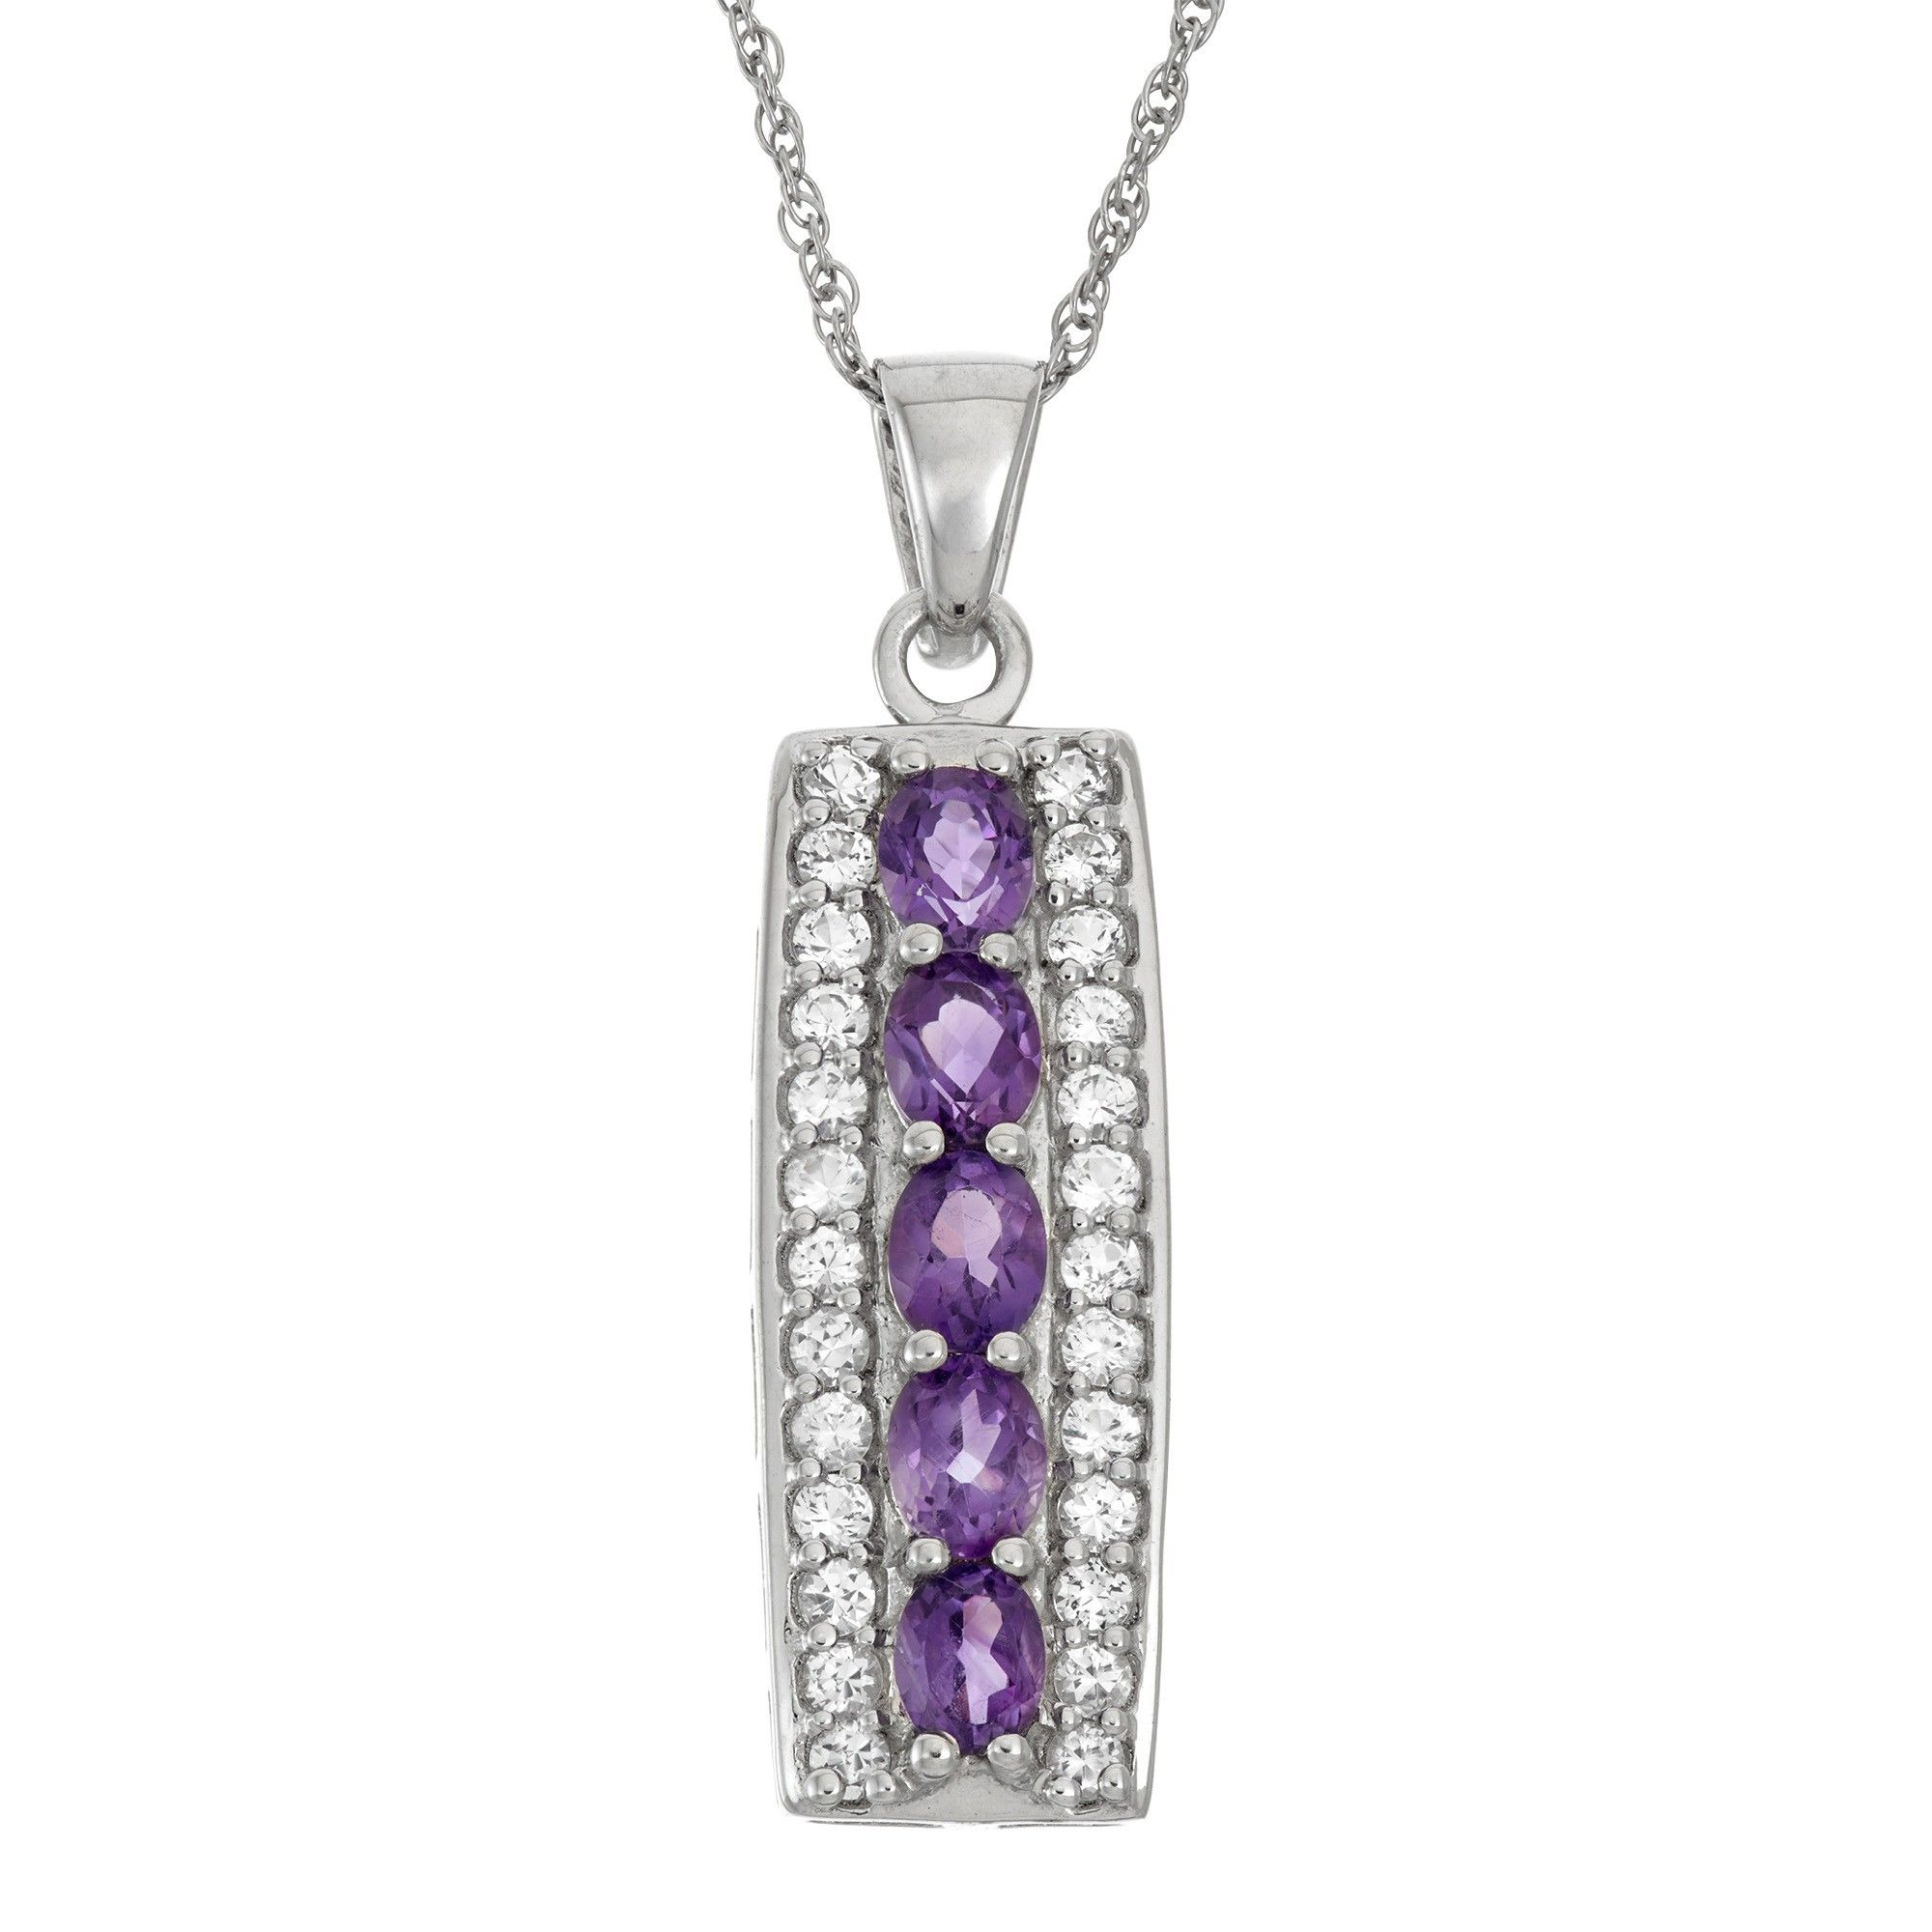 5x4mm Amethyst and White Topaz Rectangle Pendant in 925 Sterling Silver